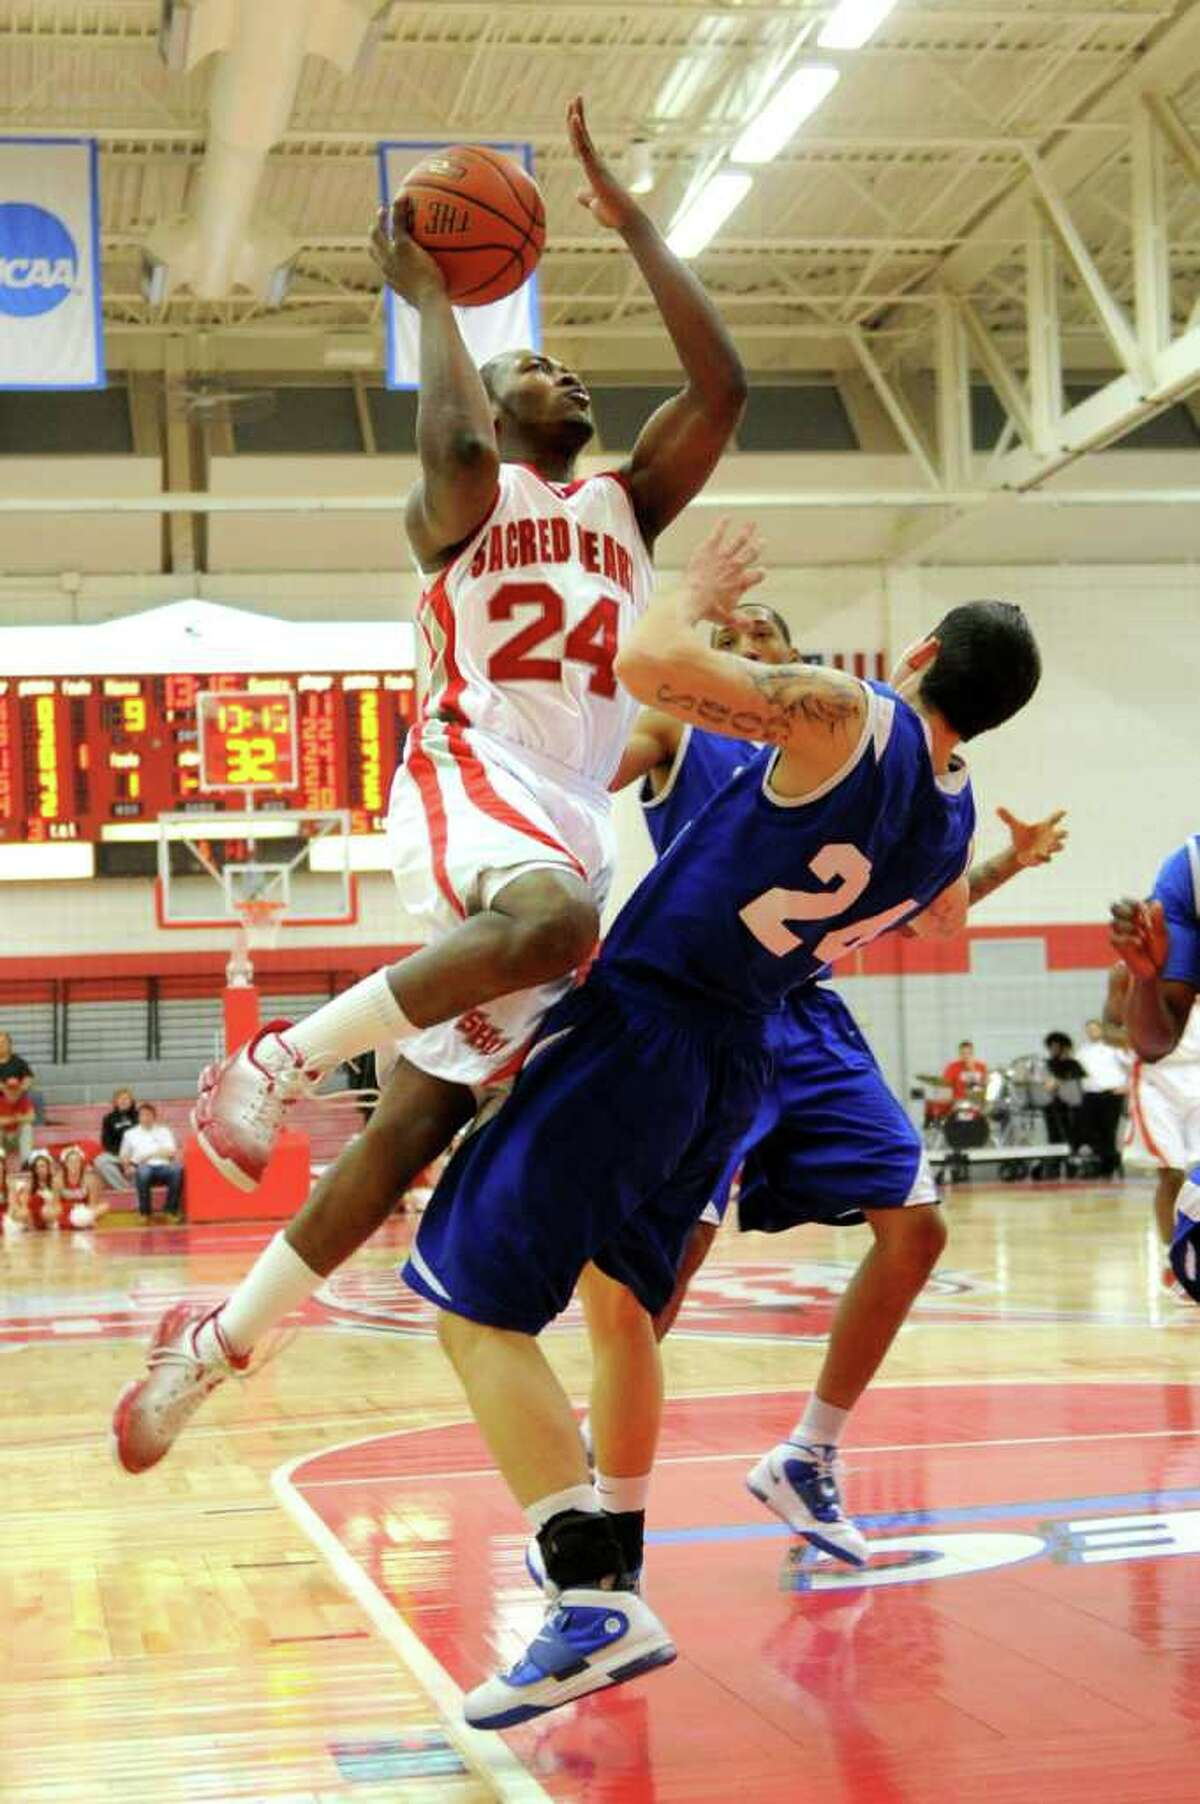 Sacred Heart University's Chris Evans puts up a shot and fouls Robby Ptacek during Thursday's game against Central Connecticut State University in Fairfield on January 13, 2011.